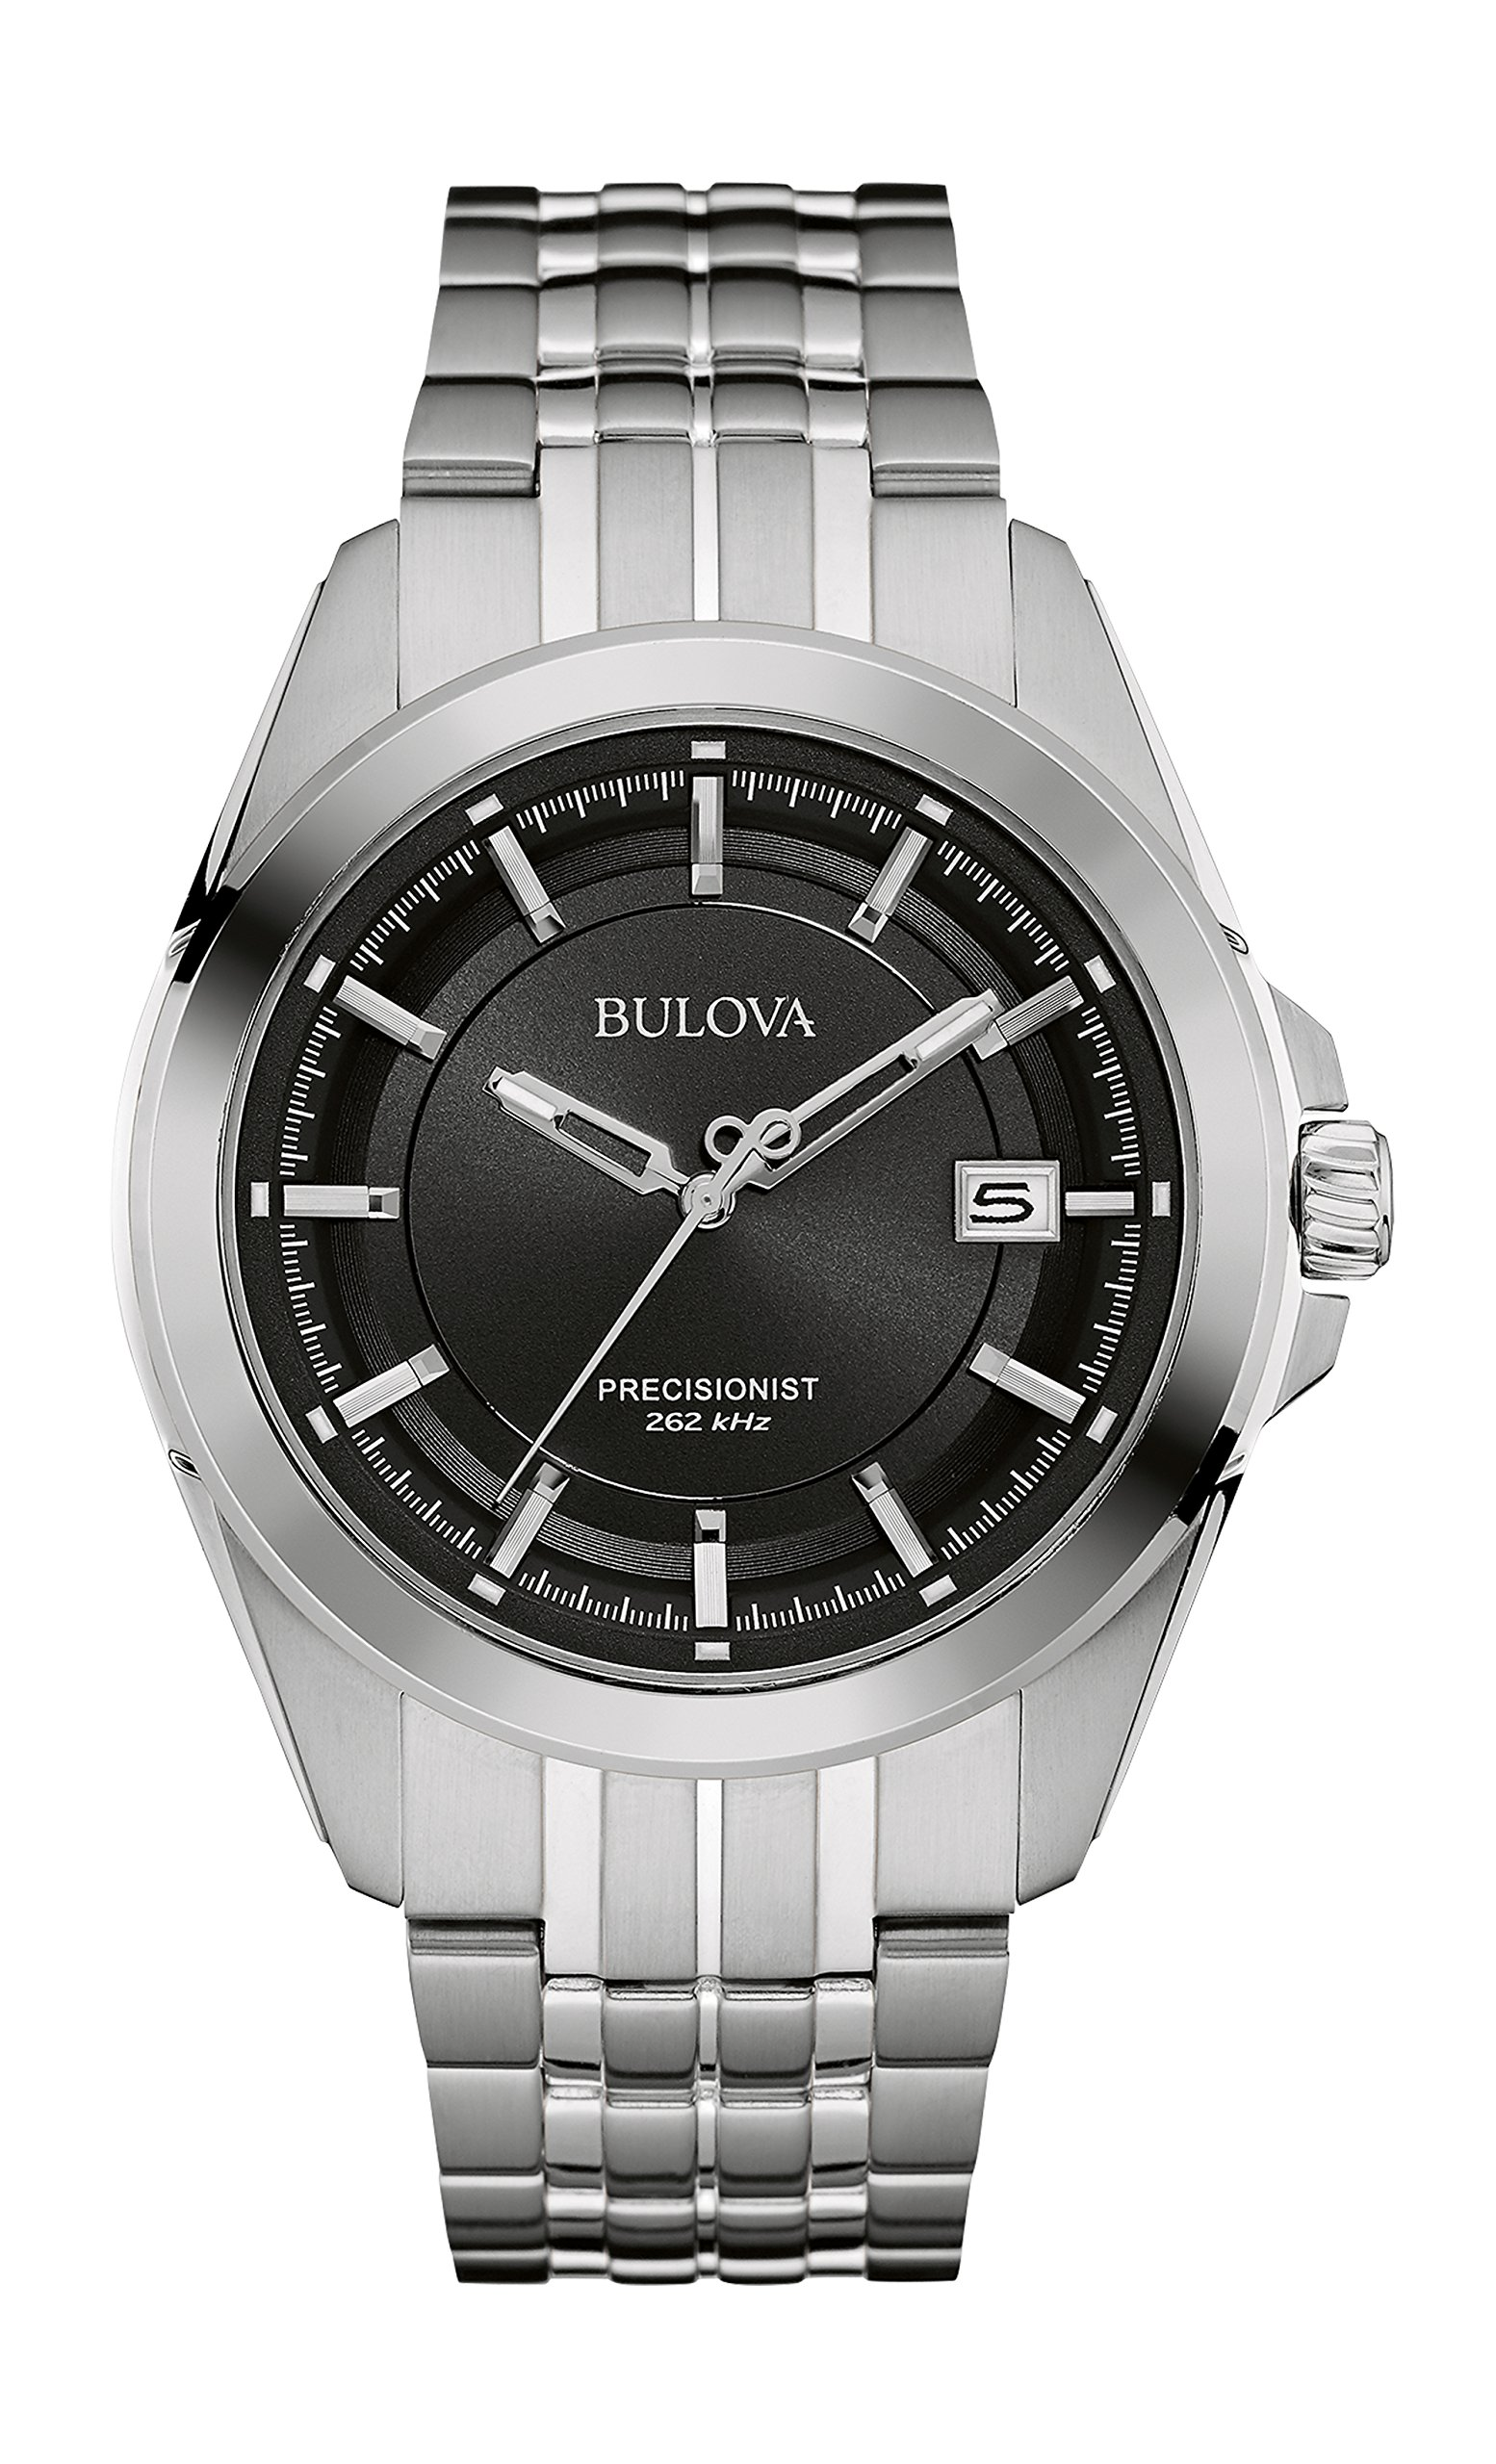 Bulova Men's Designer Watch Stainless Steel Bracelet – Black Dial Precisionist Wrist Watch 96B252